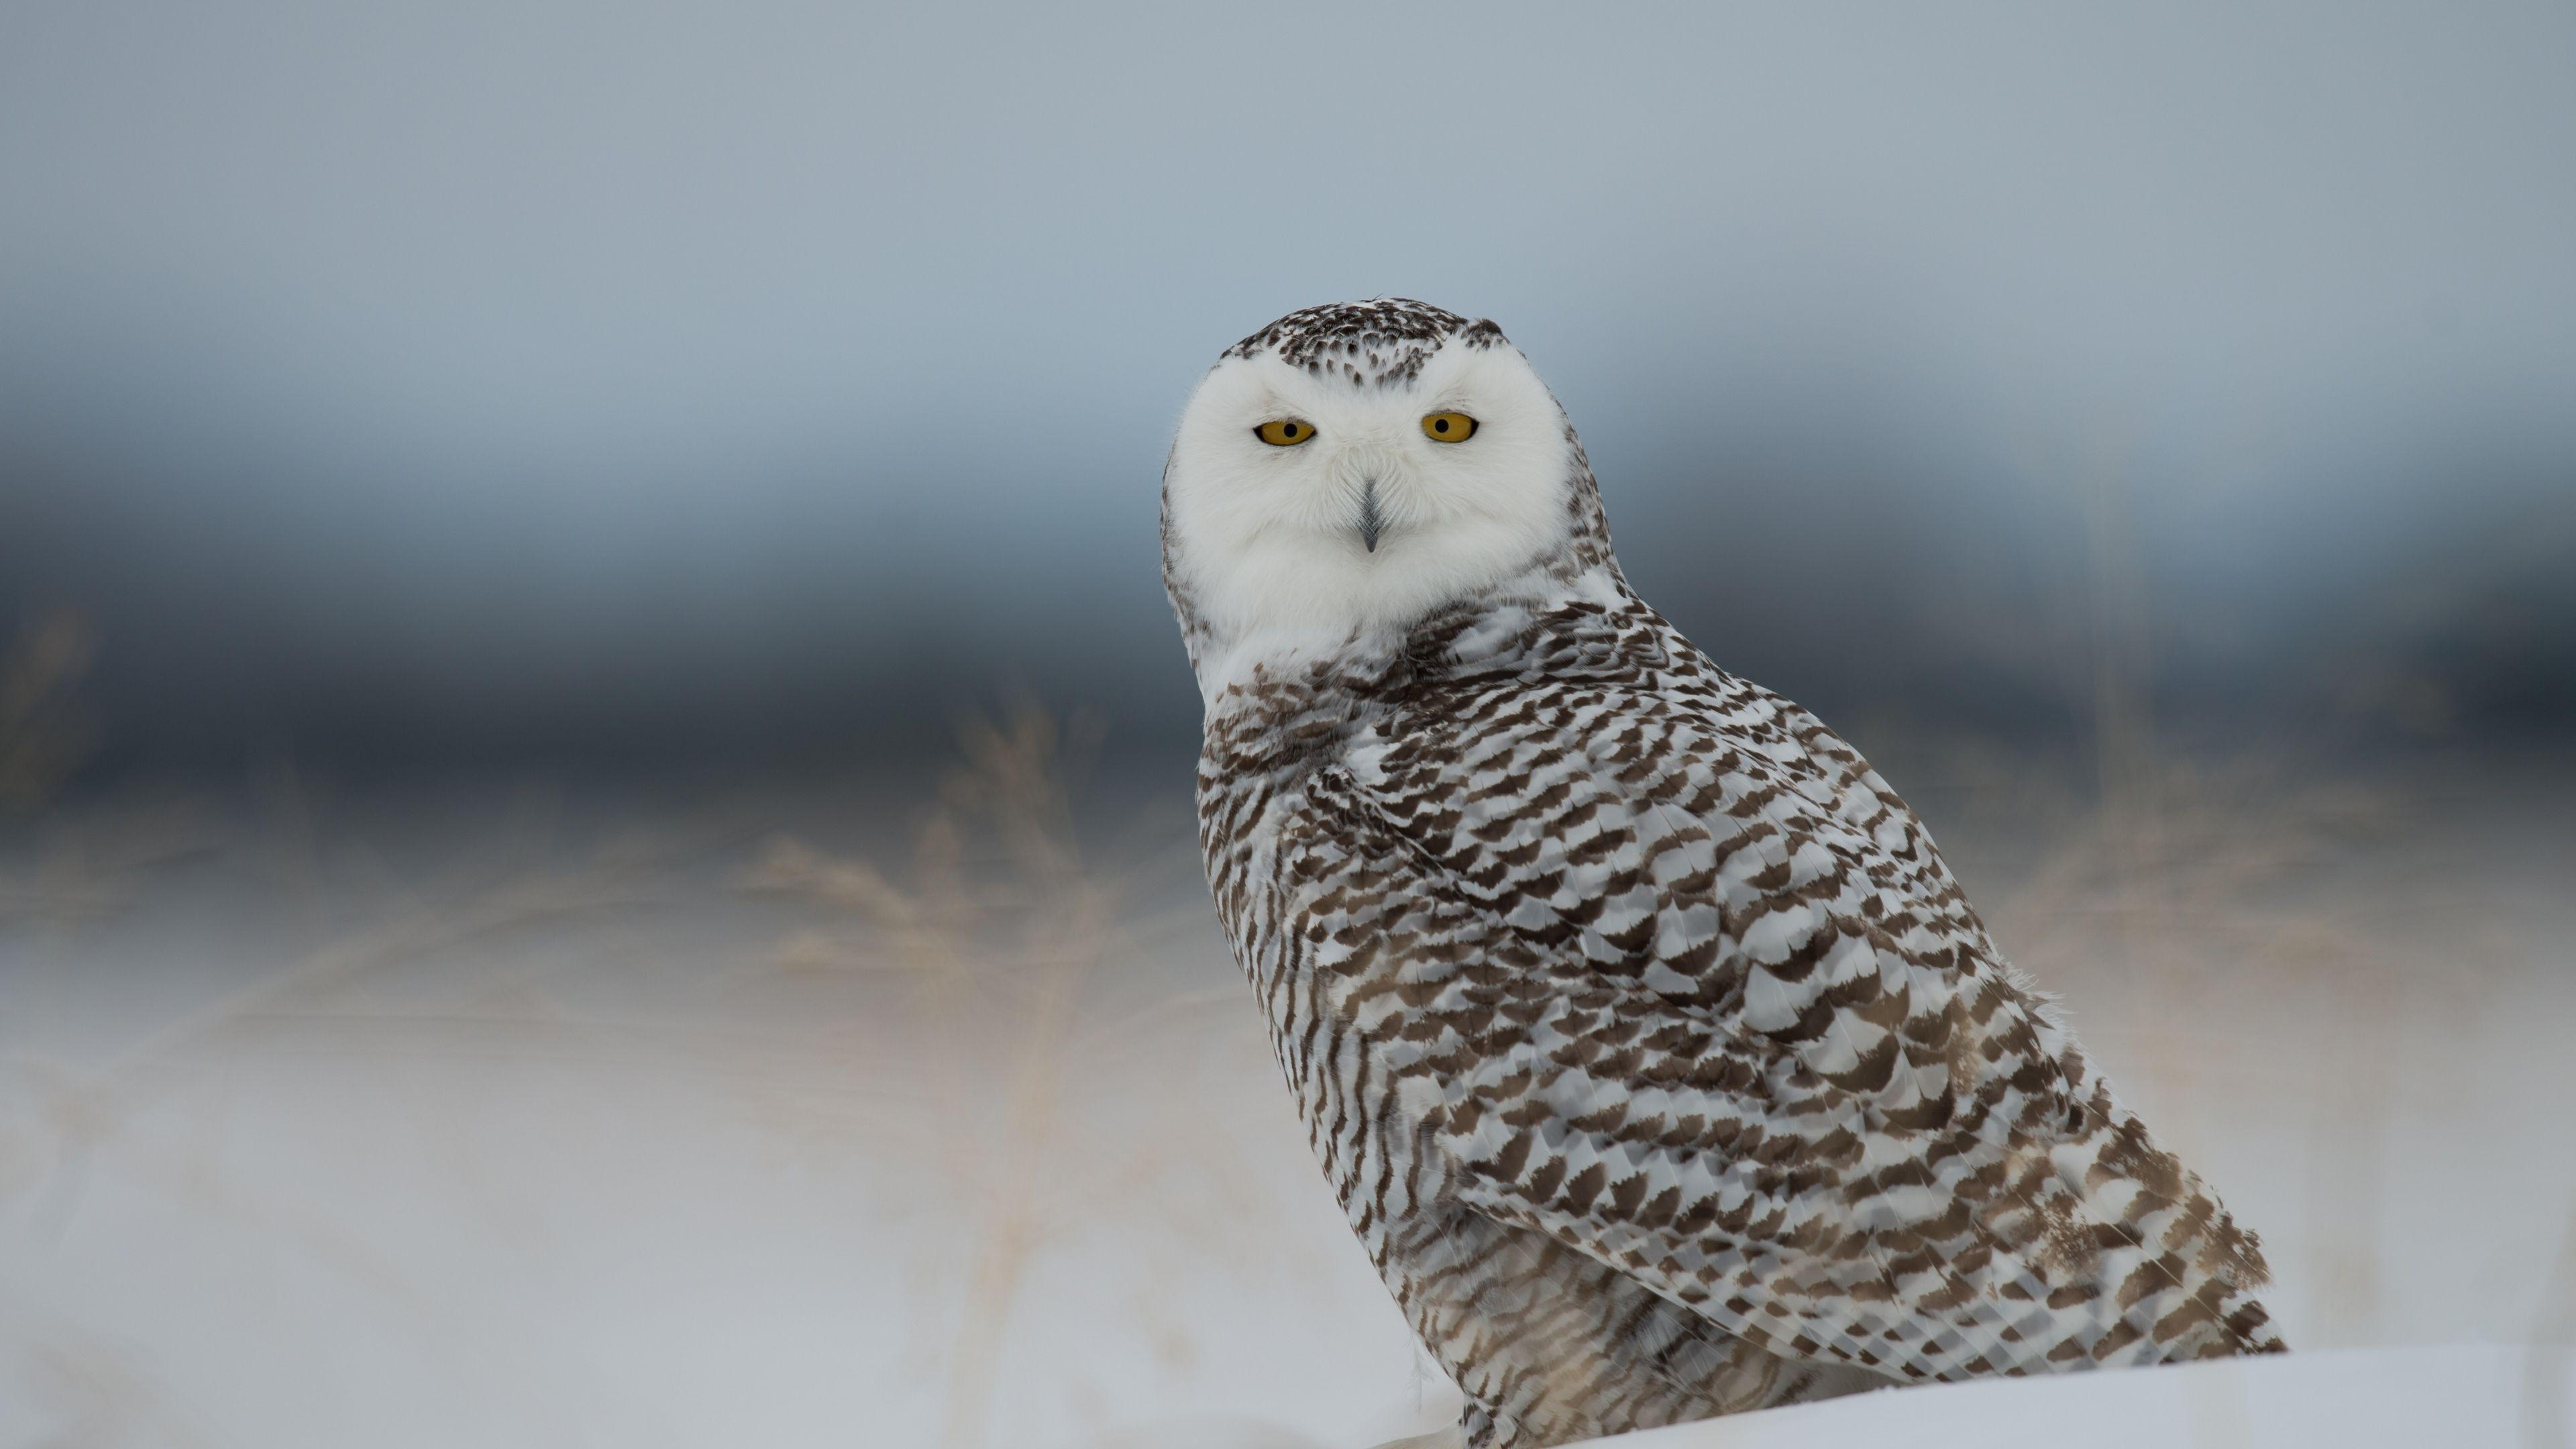 Download Wallpaper 3840x2160 Snowy owl, Owl, Predator, Bird, Snow ...